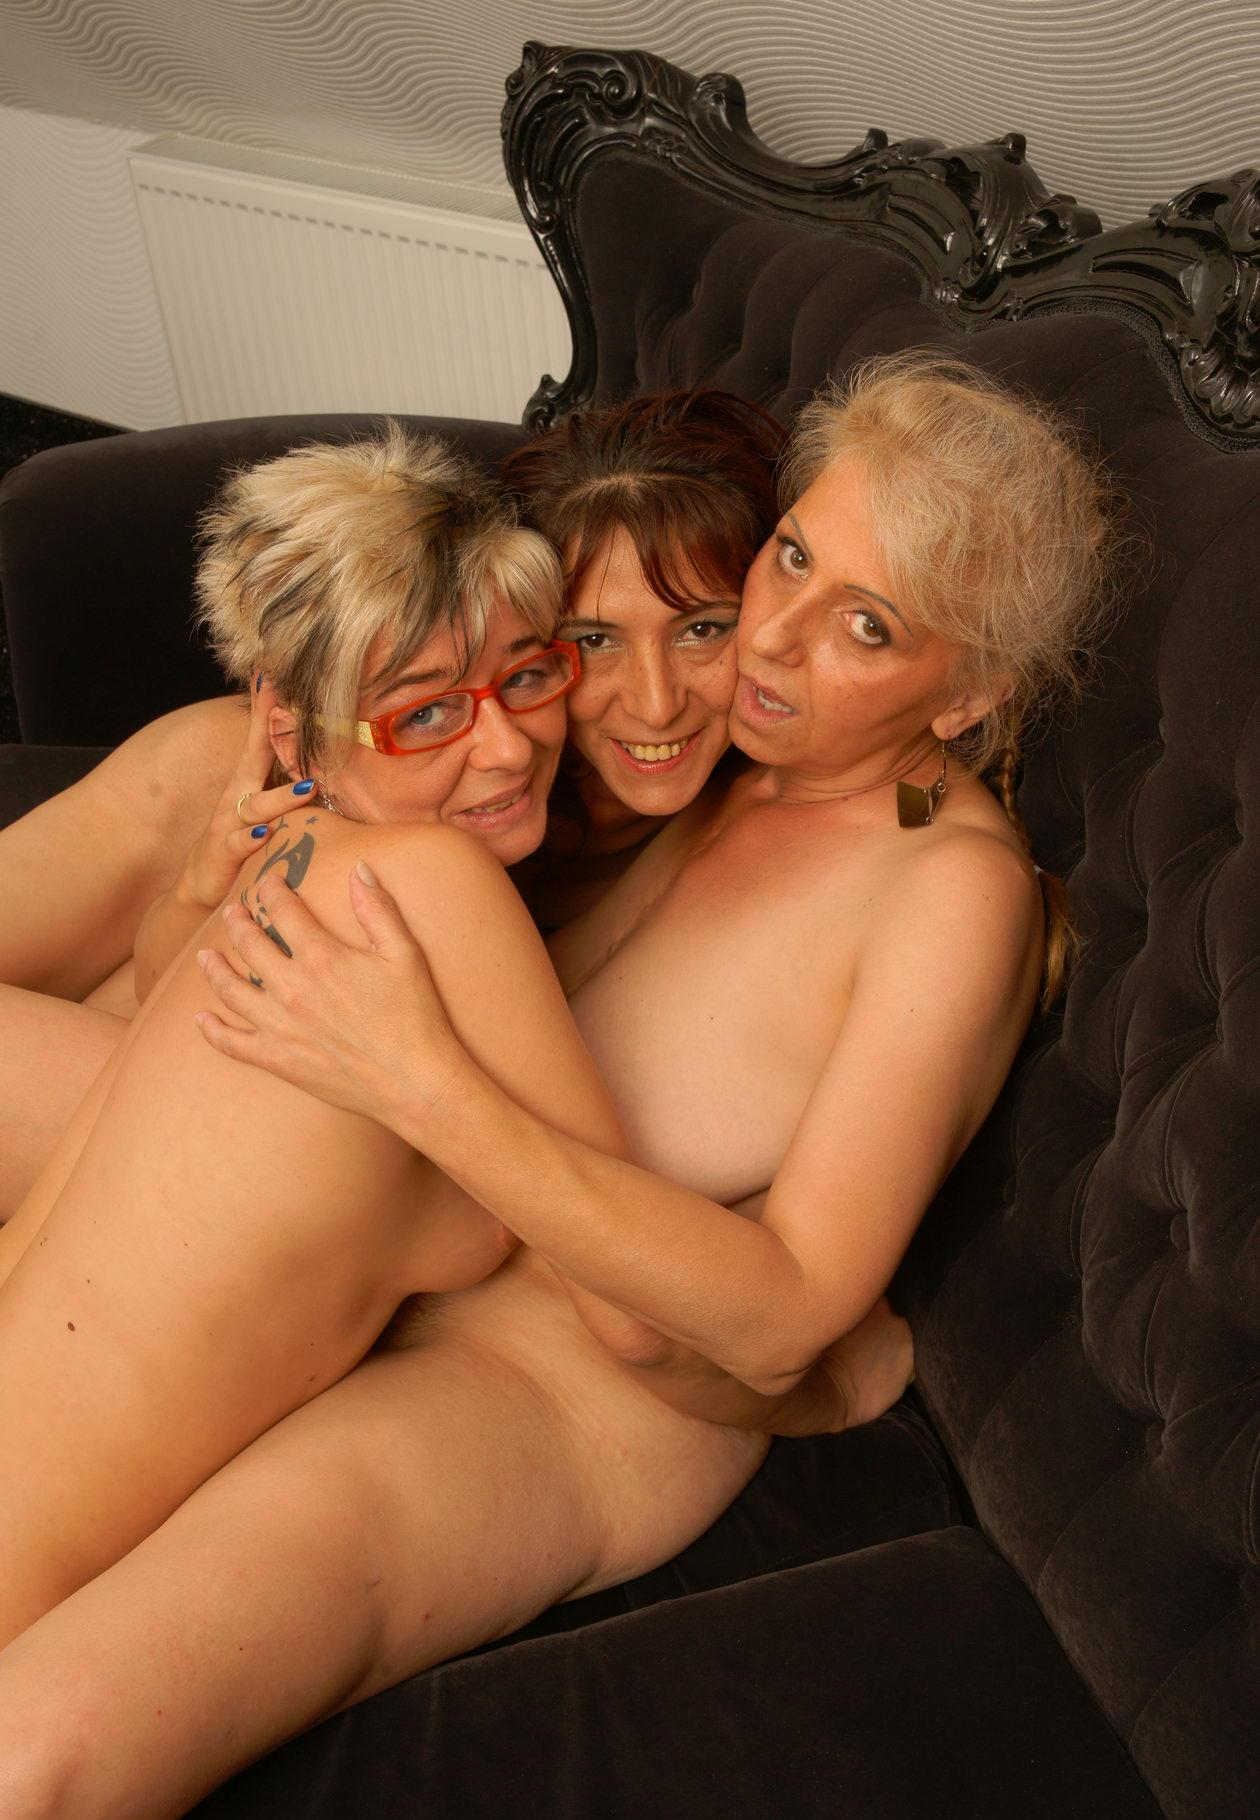 Brooklyn a anal addicted granny sucking slit of a young girl